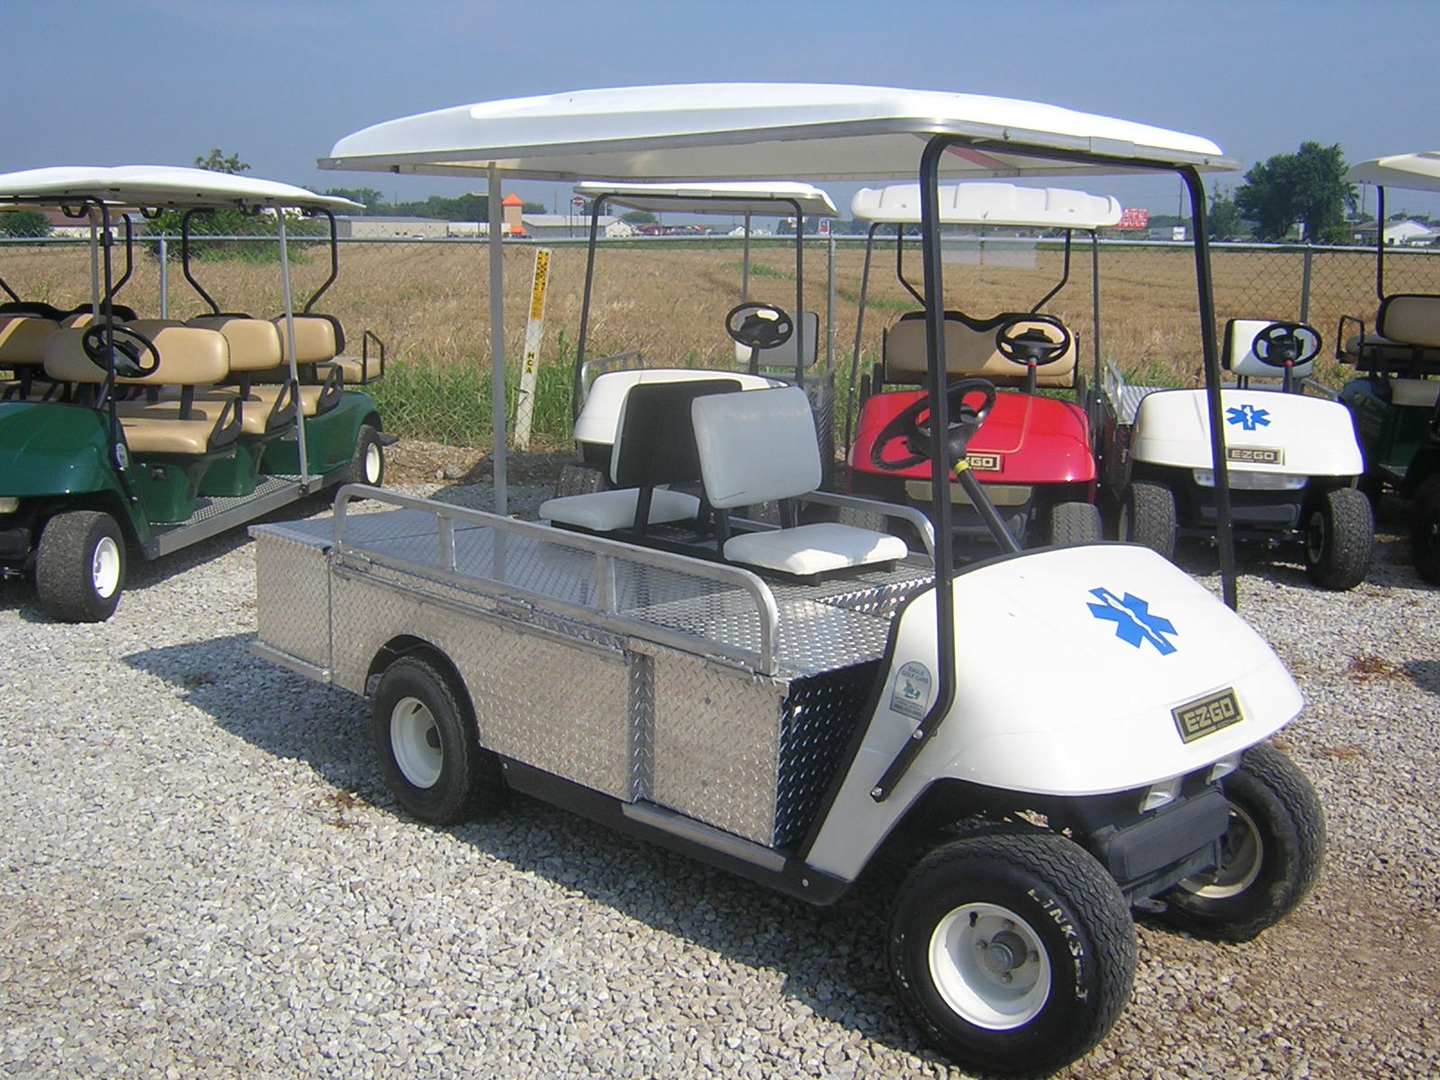 Customizing Golf Cart Shade Cover Html on hot tub covers, utv covers, boat covers, lawn mower covers, snowmobile covers, golf register covers, grill covers, golf utility carts, golf club covers, golf bags, rv covers, golf accessories, car covers, atv covers, golf facebook covers, bicycle covers, scooter covers, golf apparel, golf clothing, motorcycle covers,